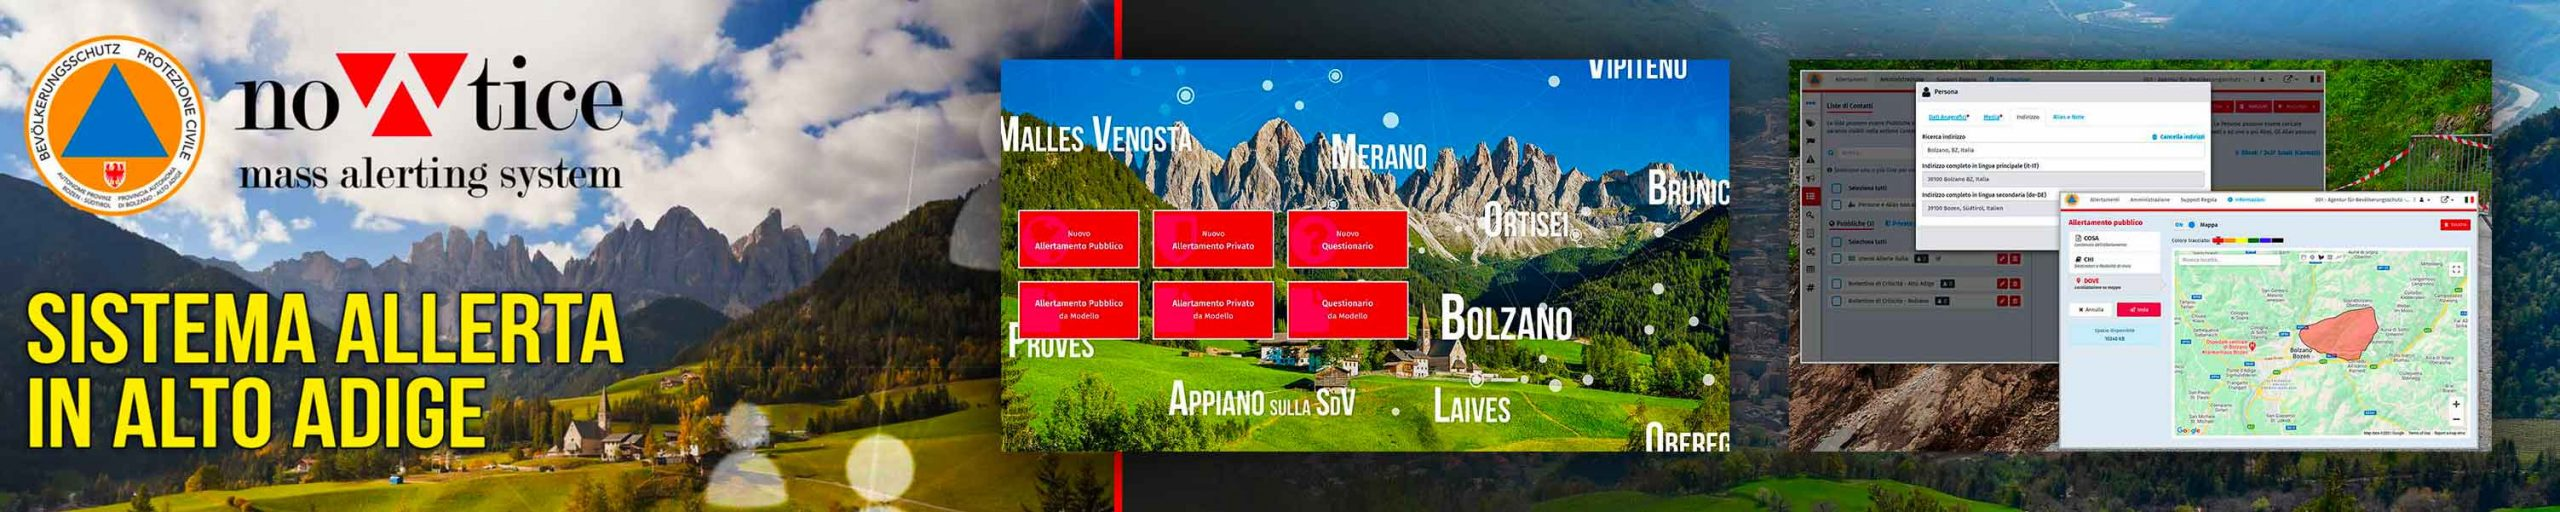 Banner Bolzano - Use CASES - nowtice